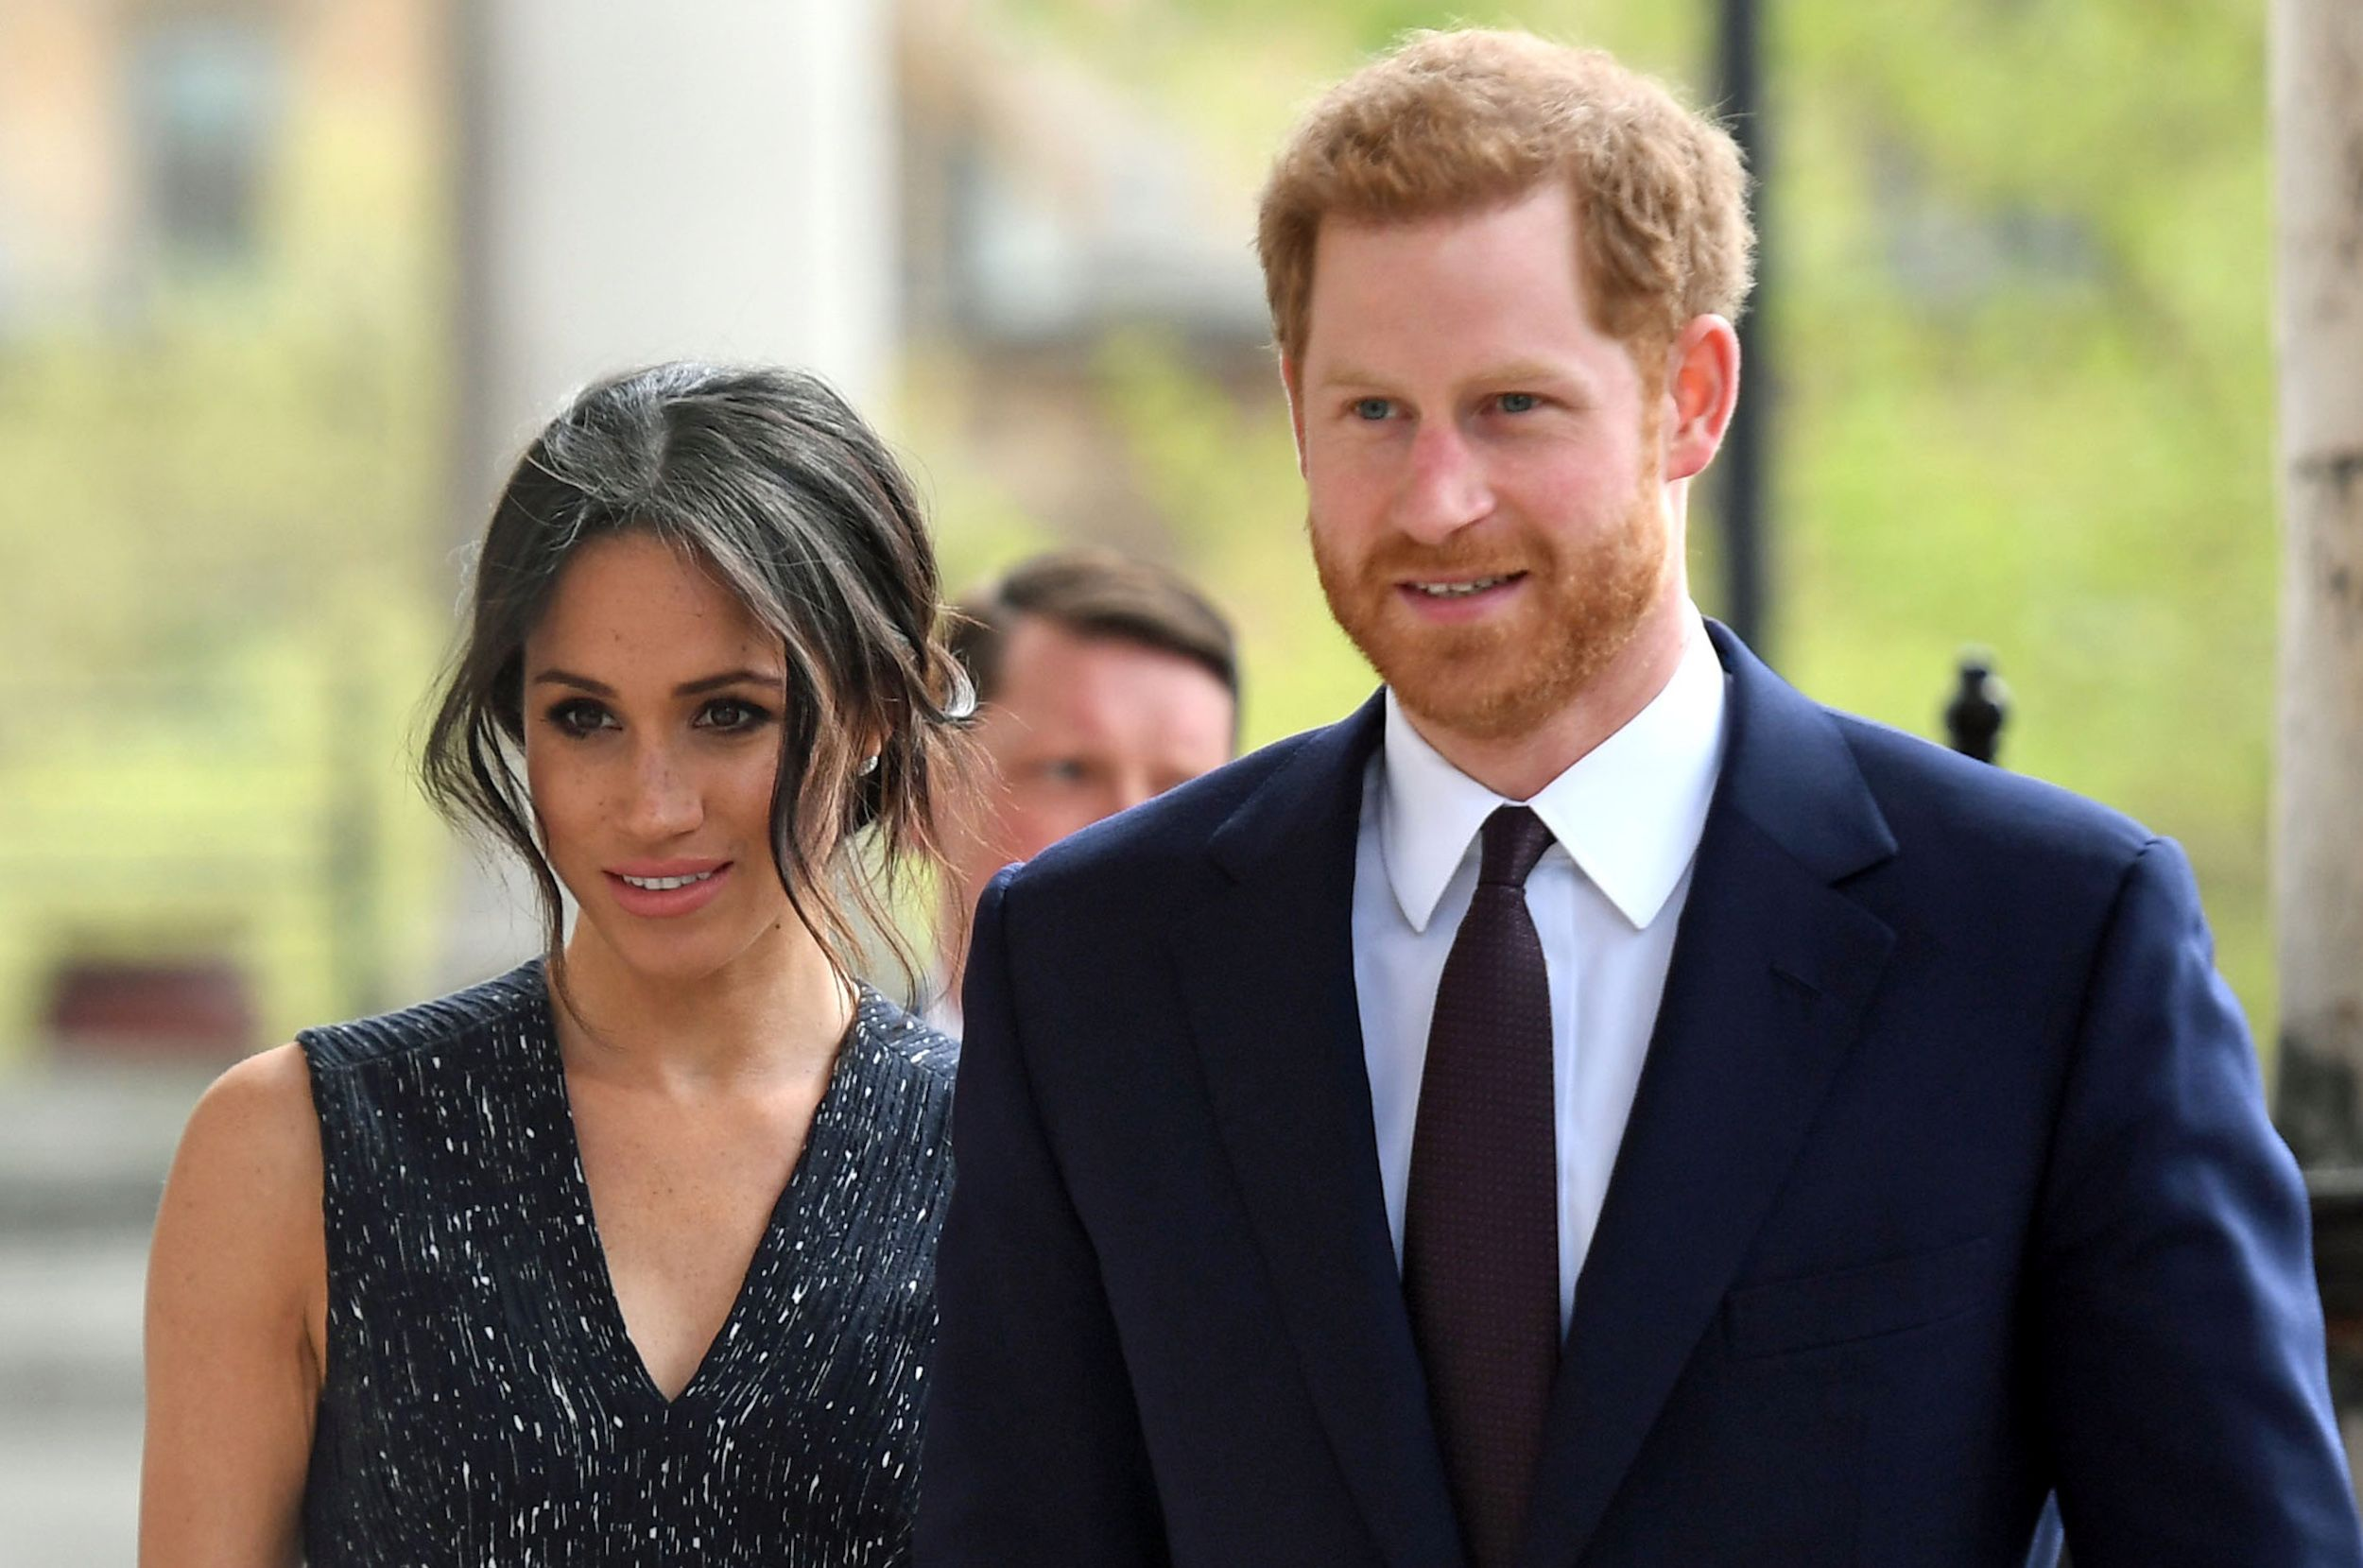 The special way Meghan Markle and Prince Harry celebrated Thanksgiving